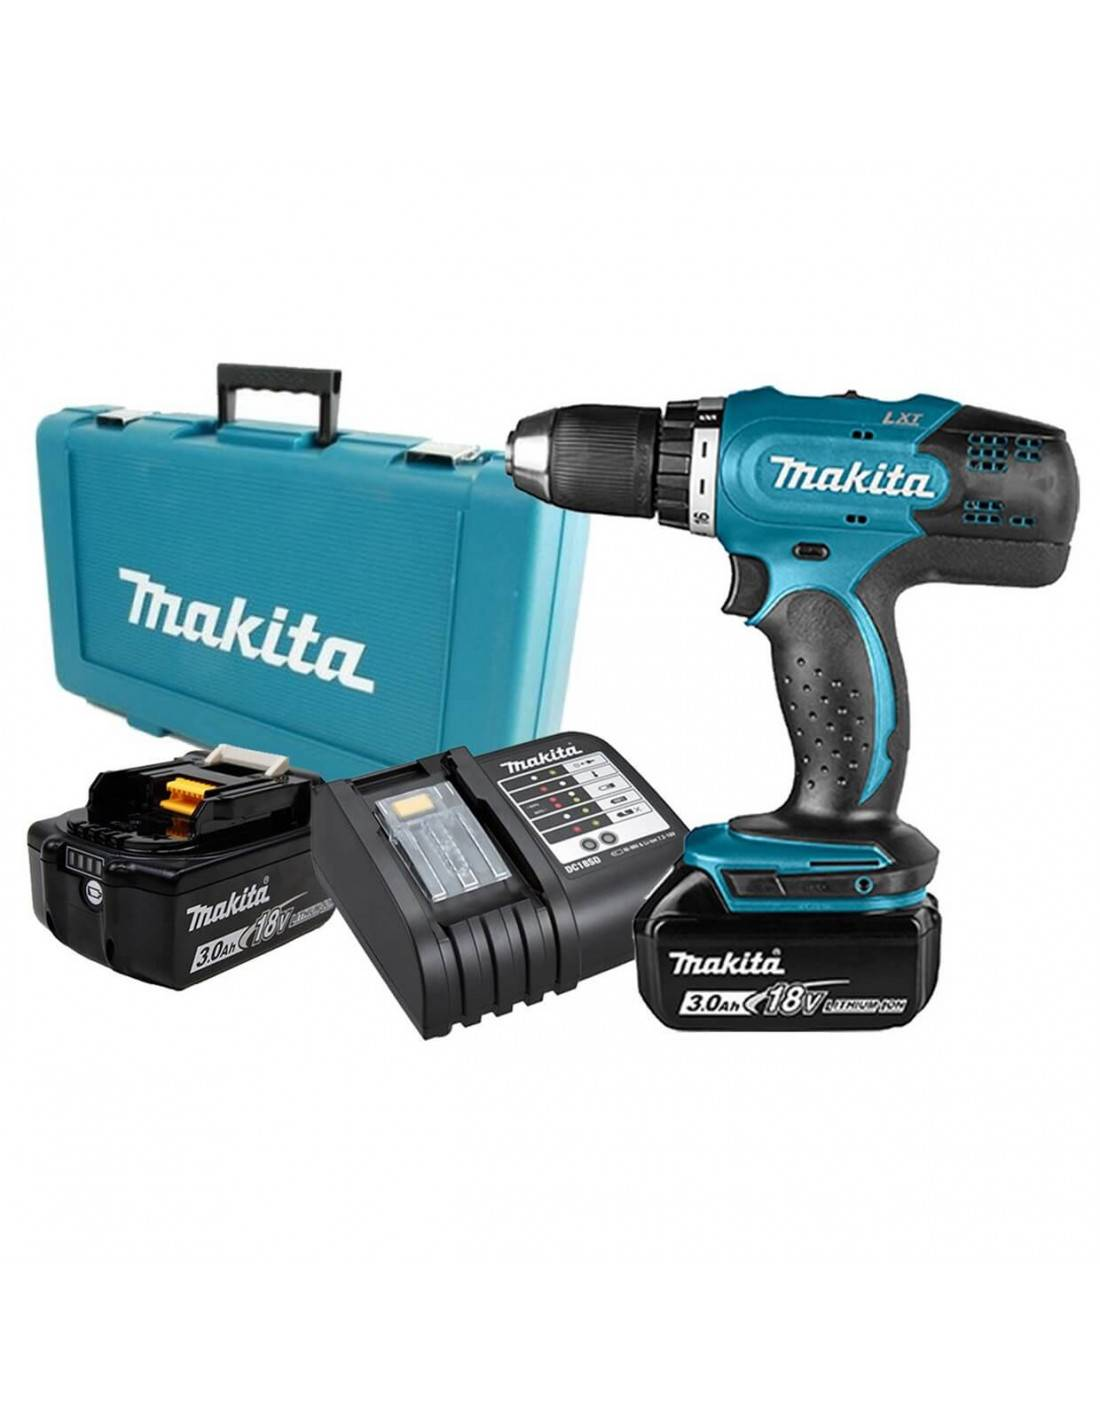 MAKITA - Perceuse visseuse 18V Li-Ion Ø 13 mm + 2 batteries 3AH - DDF453SFE